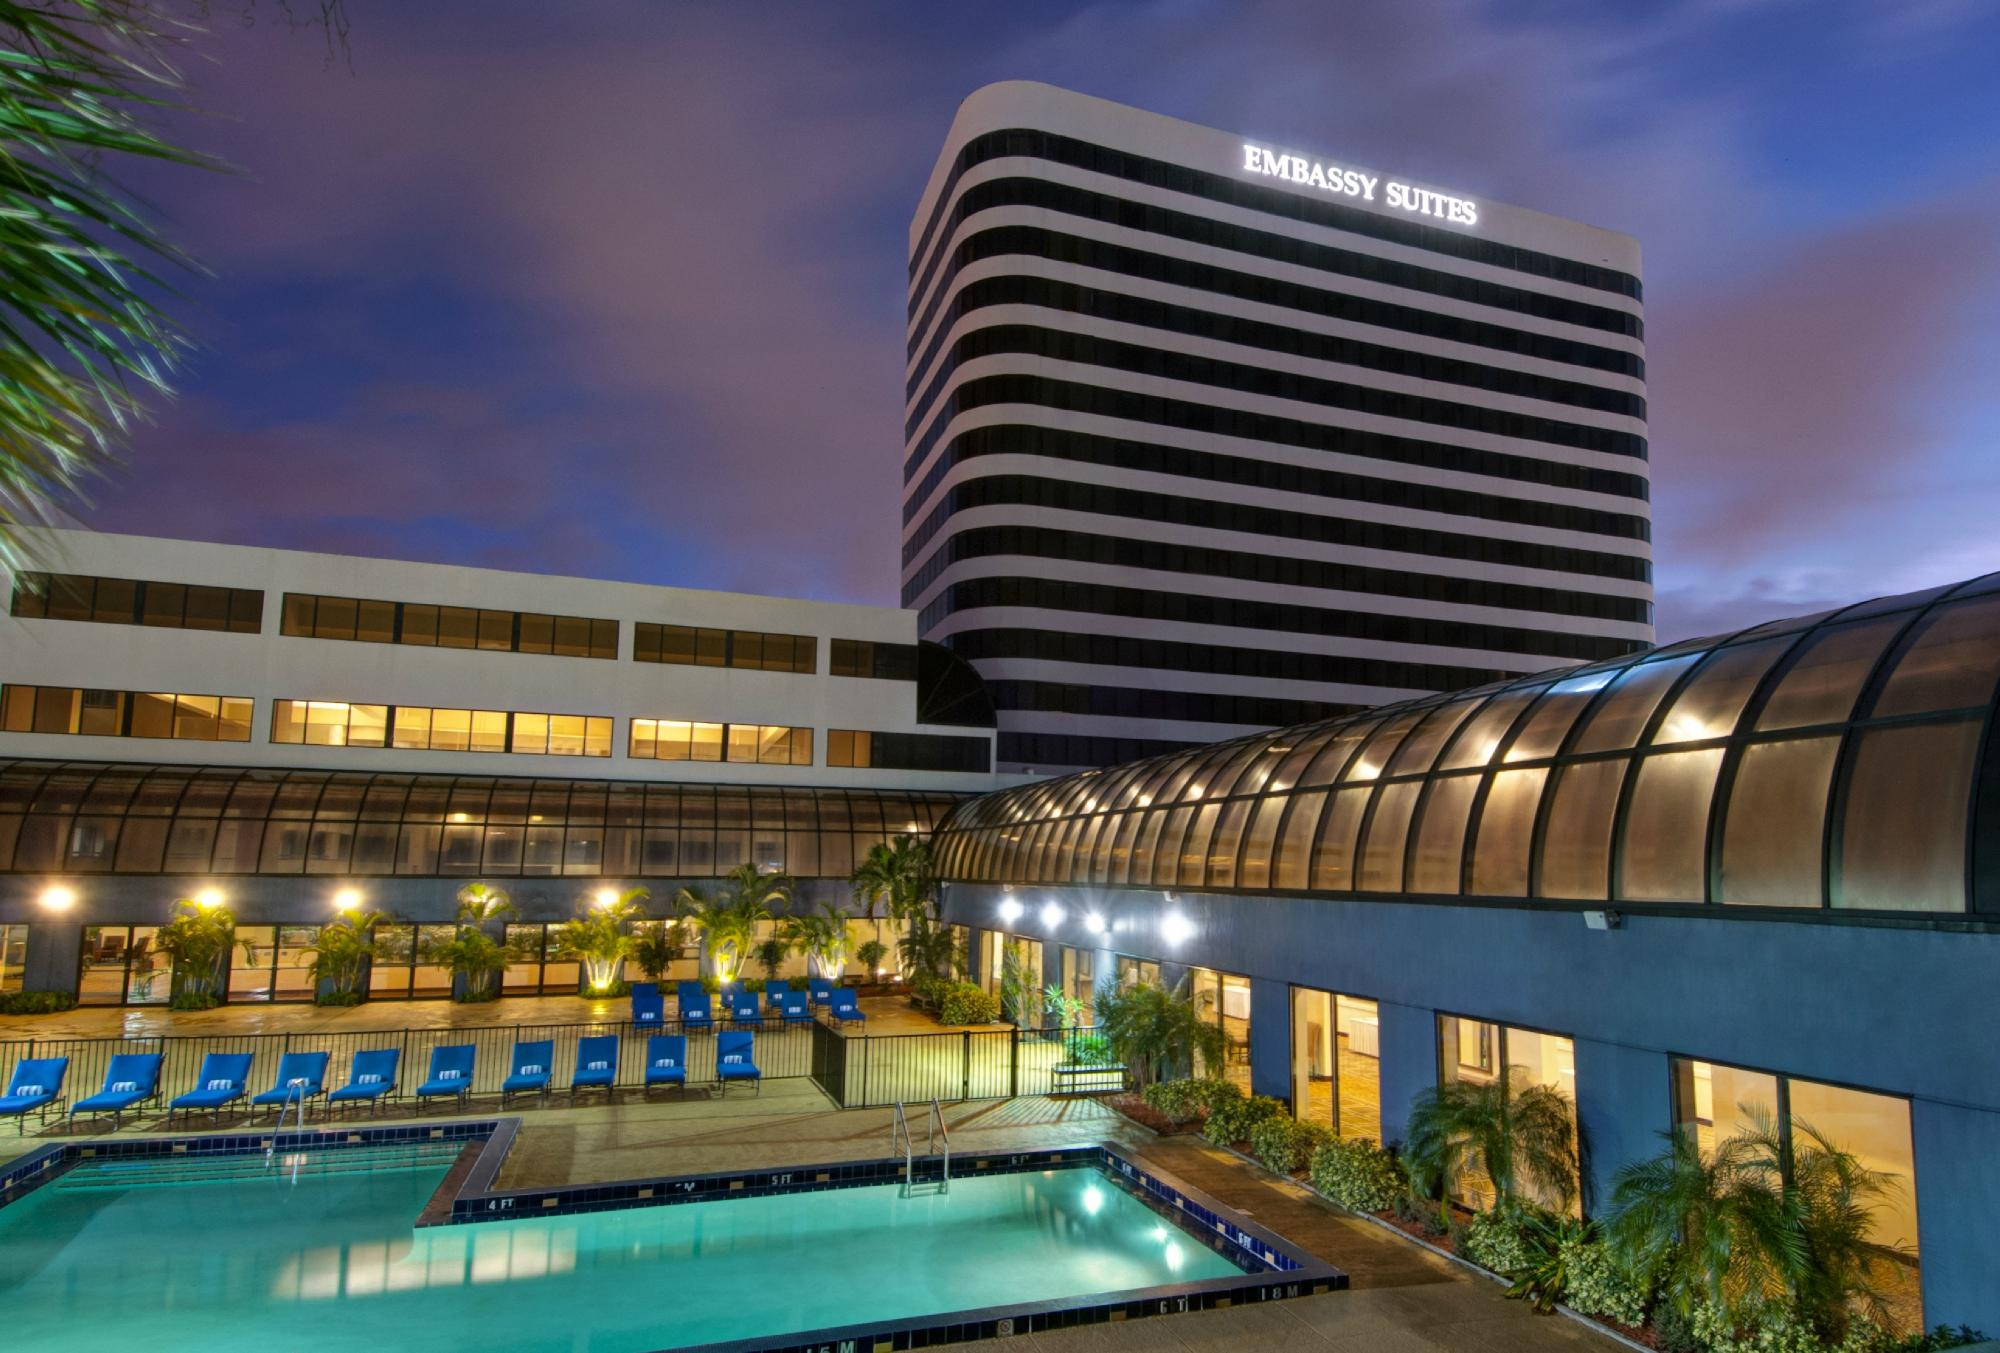 Embassy Suites by Hilton West Palm Beach - Central